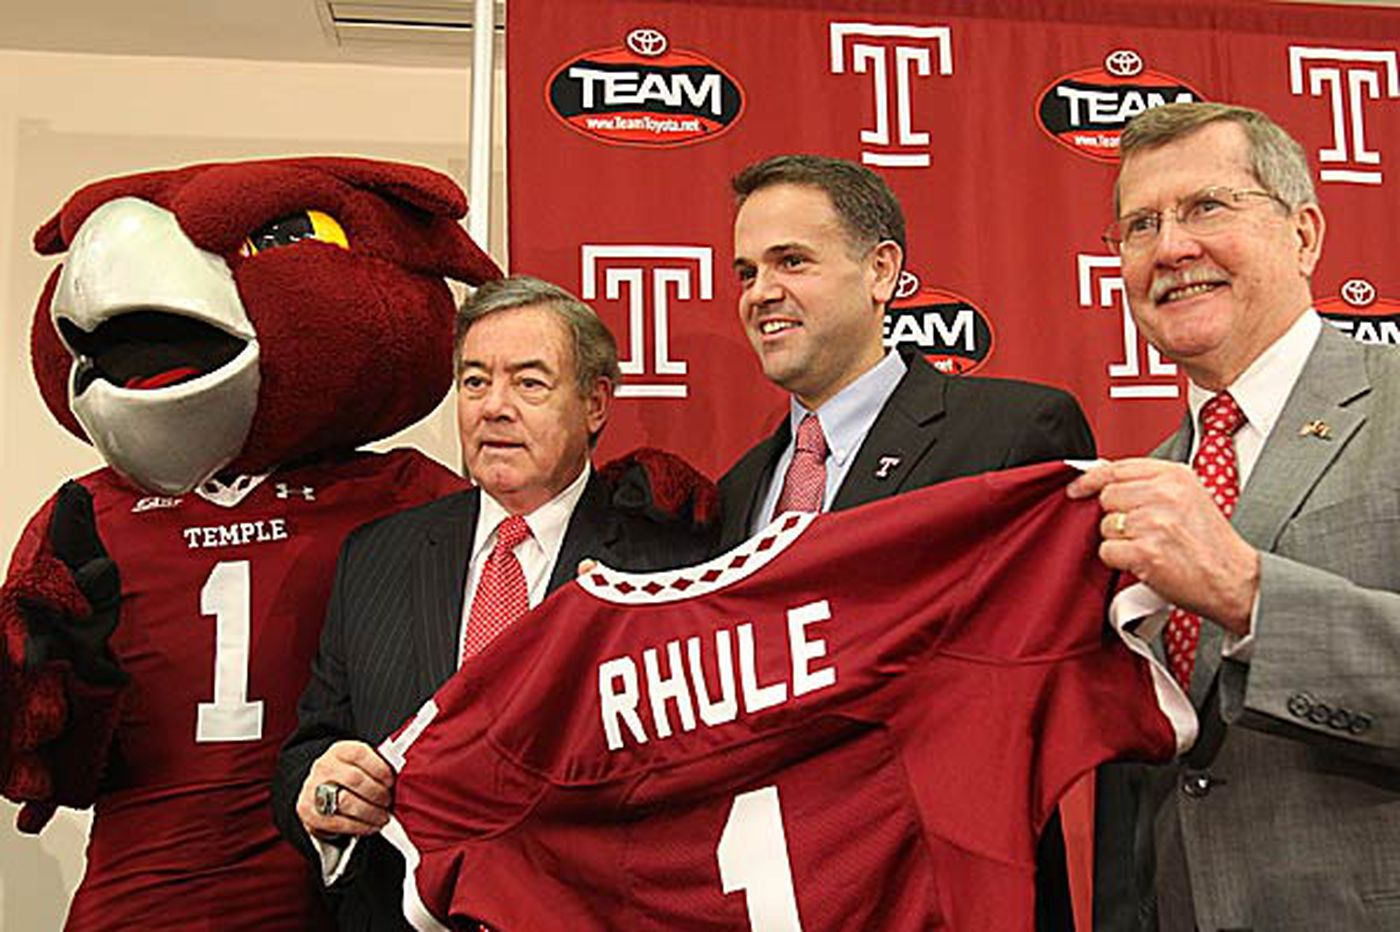 New Temple coach Matt Rhule a popular choice